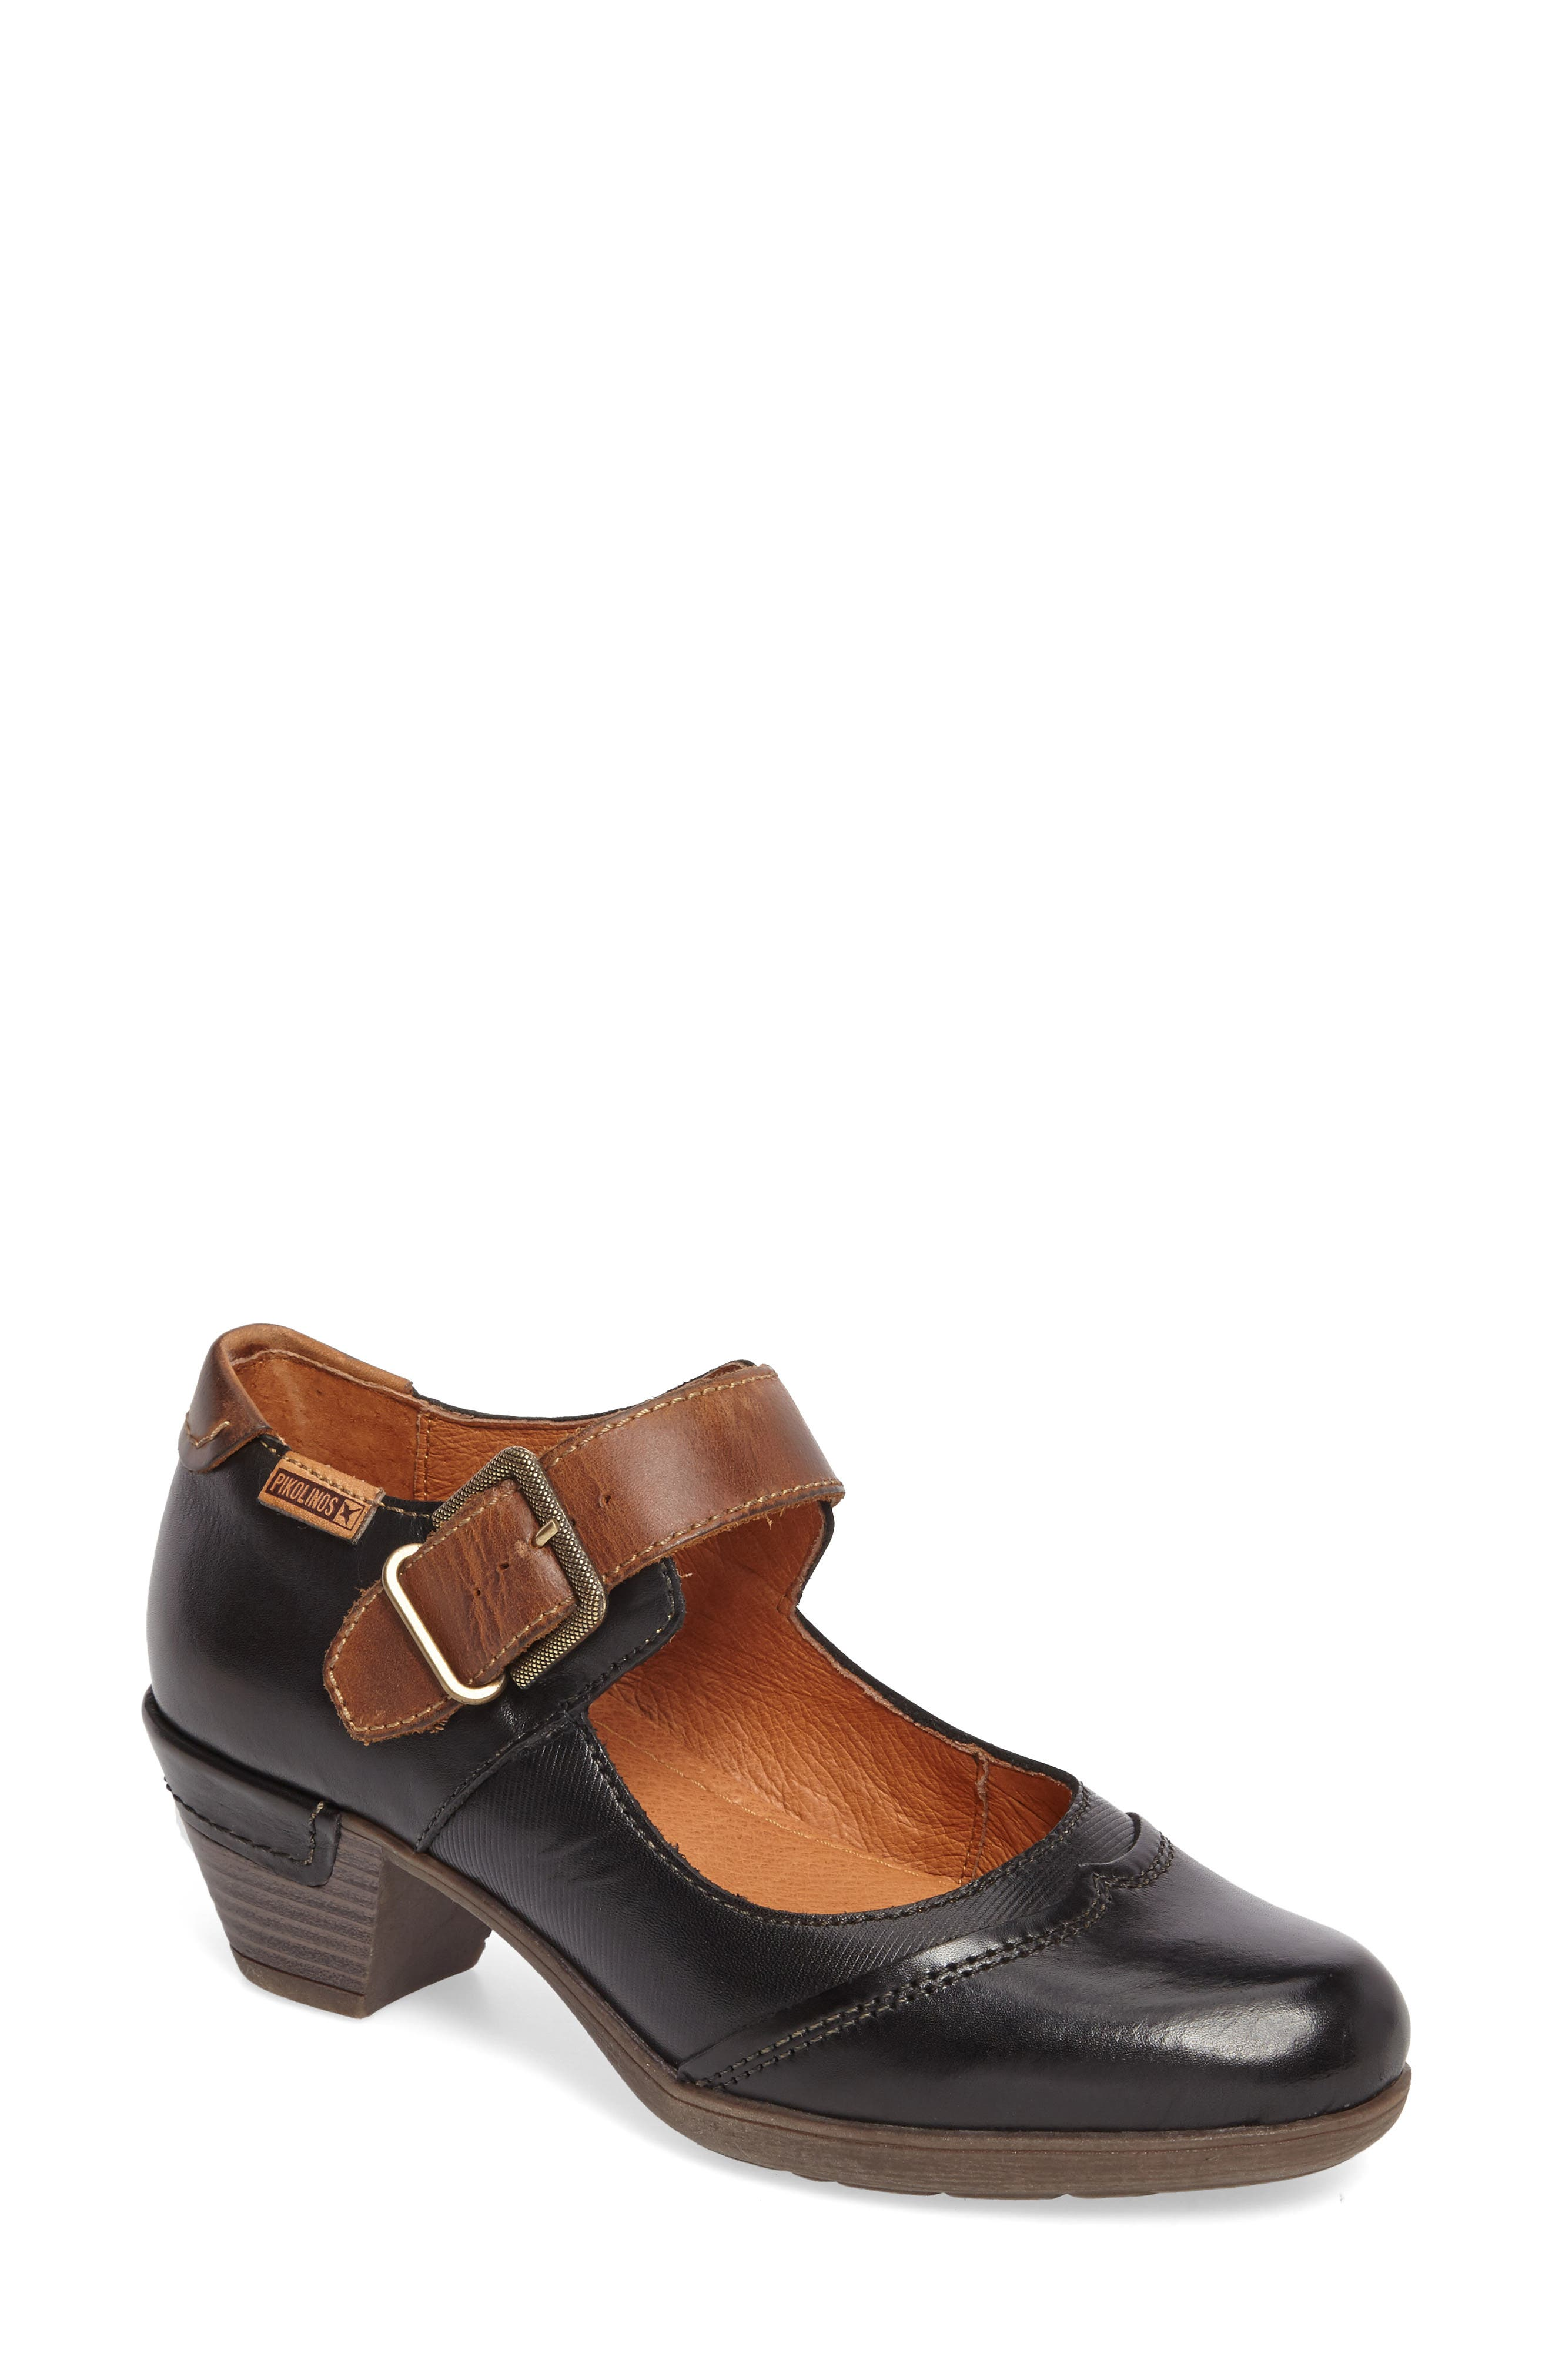 Rotterdam Water Resistant Mary Jane Pump,                         Main,                         color, 001